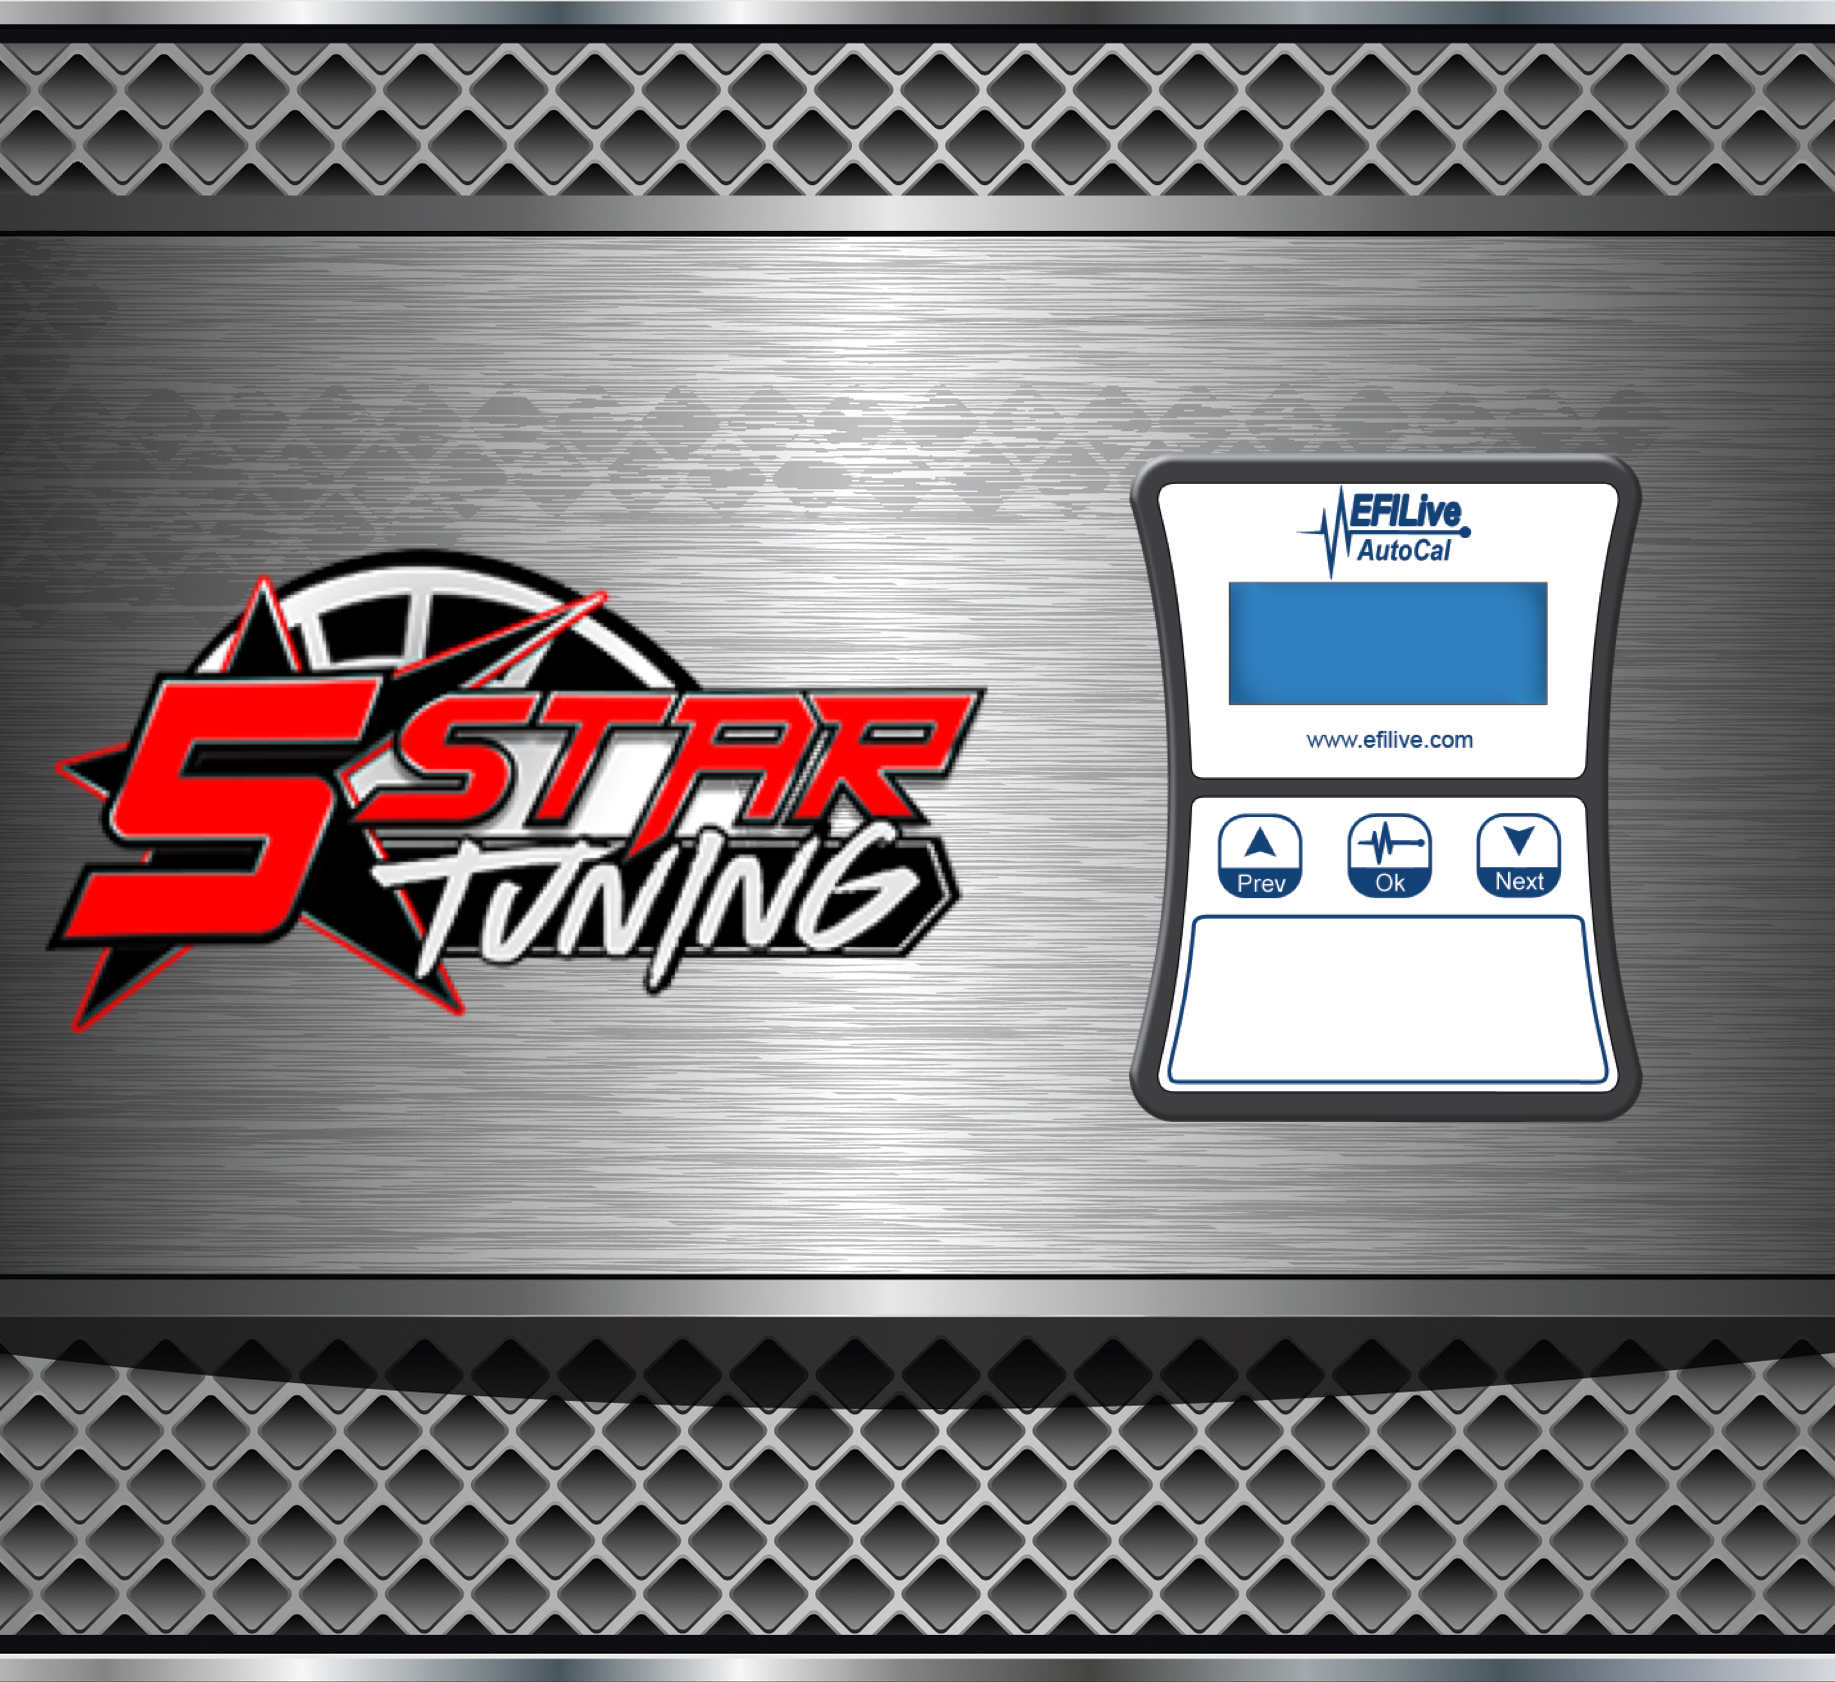 2014-2016 Silverado/Sierra 5 3L EFI Live AutoCal With Your Choice of 5 Star  Tuning Custom Tunes